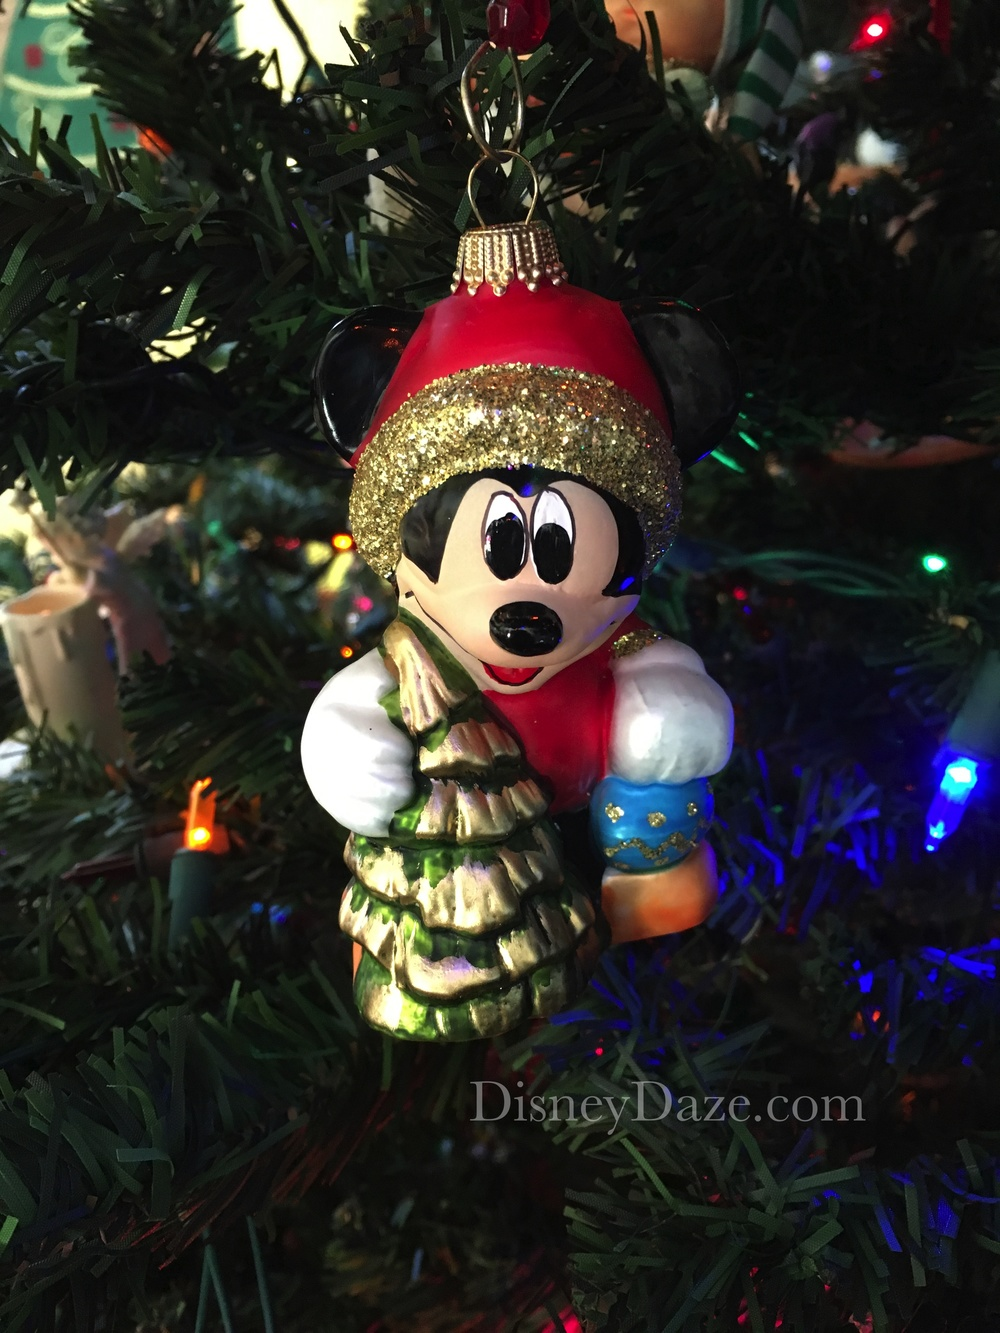 Walt Disney World Exclusive - Glass Ornament